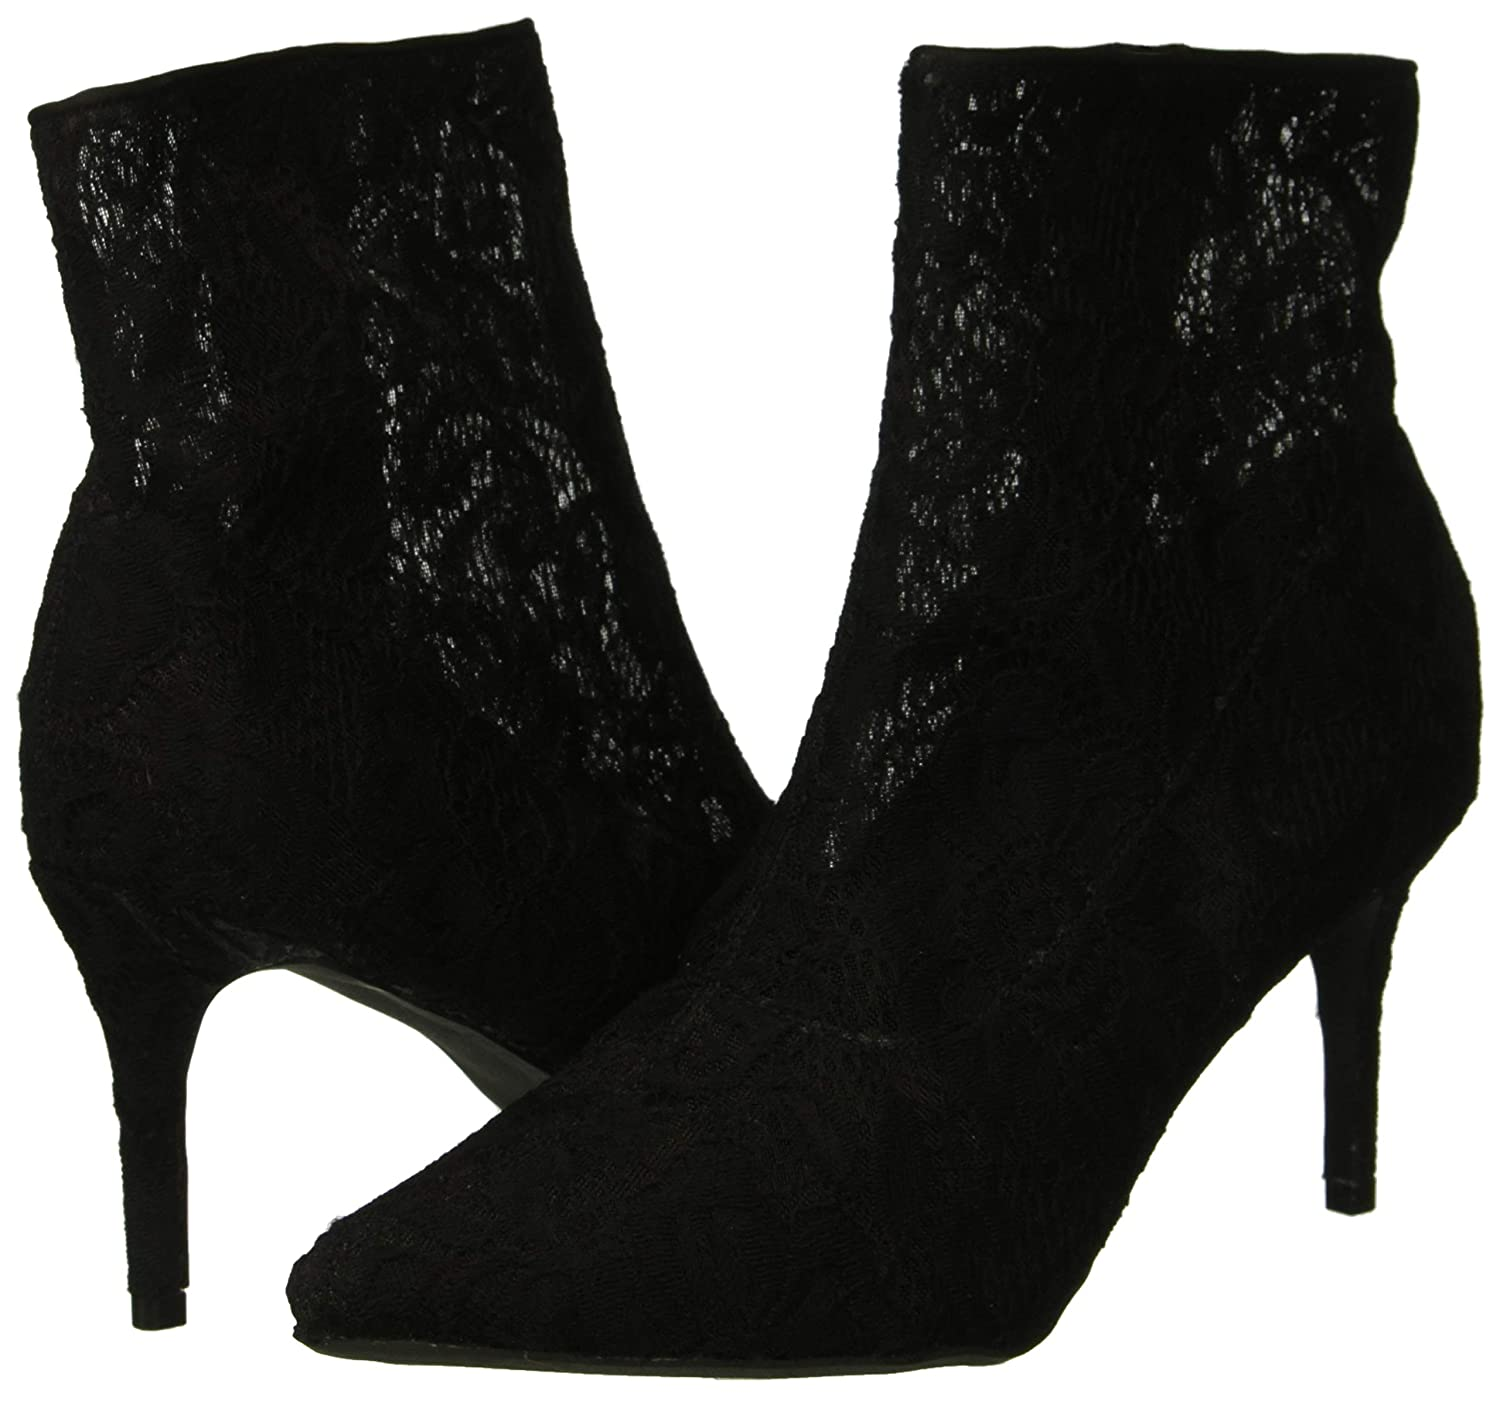 8.5 M US Black Fabric lace Rampage Womens Thaimara Stiletto Heel Pointed Toe Ankle Bootie Boot